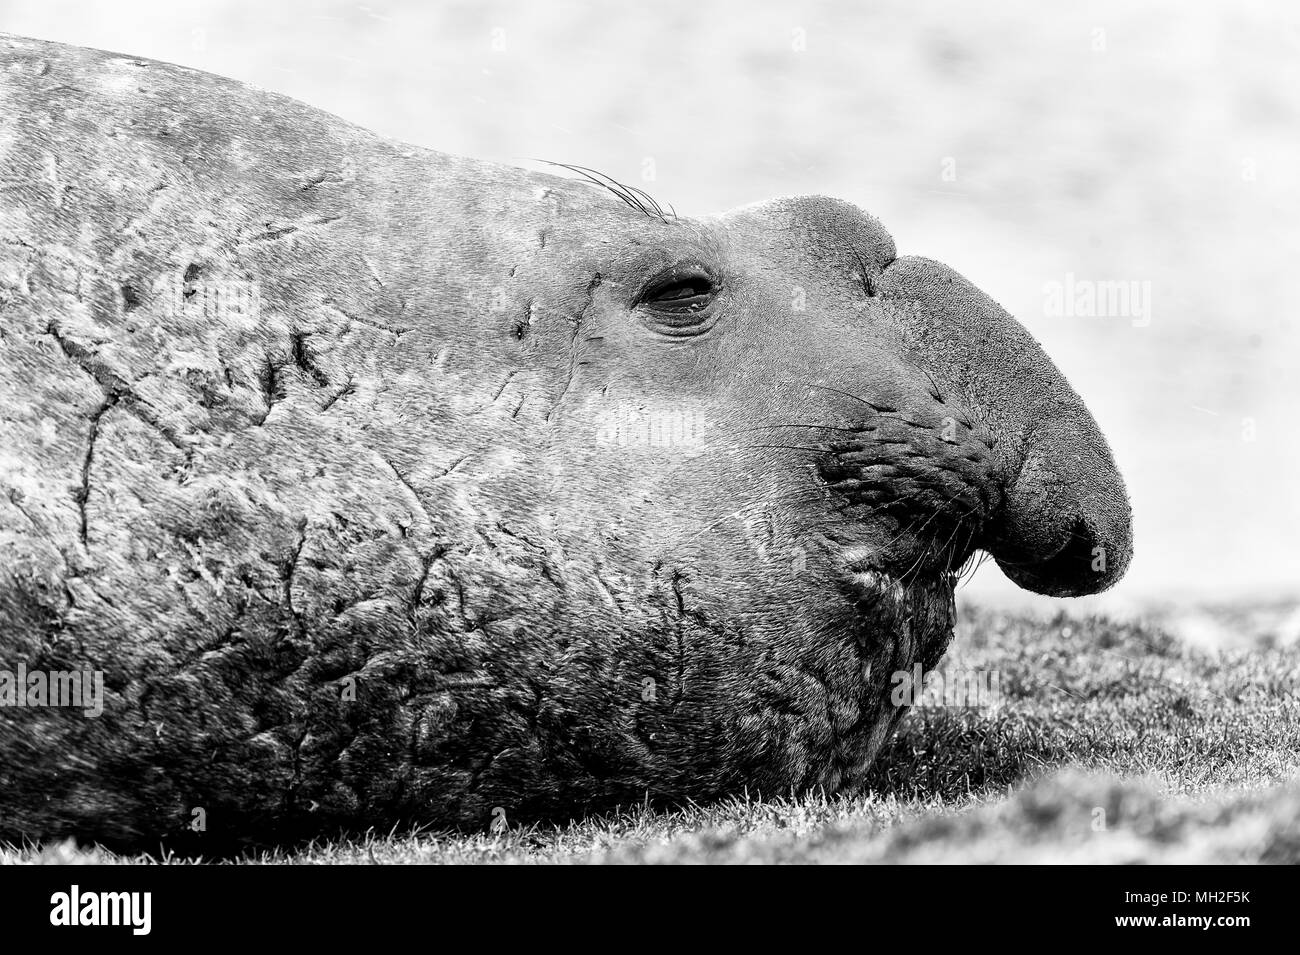 Elephant seal in black and white. South Georgia, South Atlantic Ocean. - Stock Image